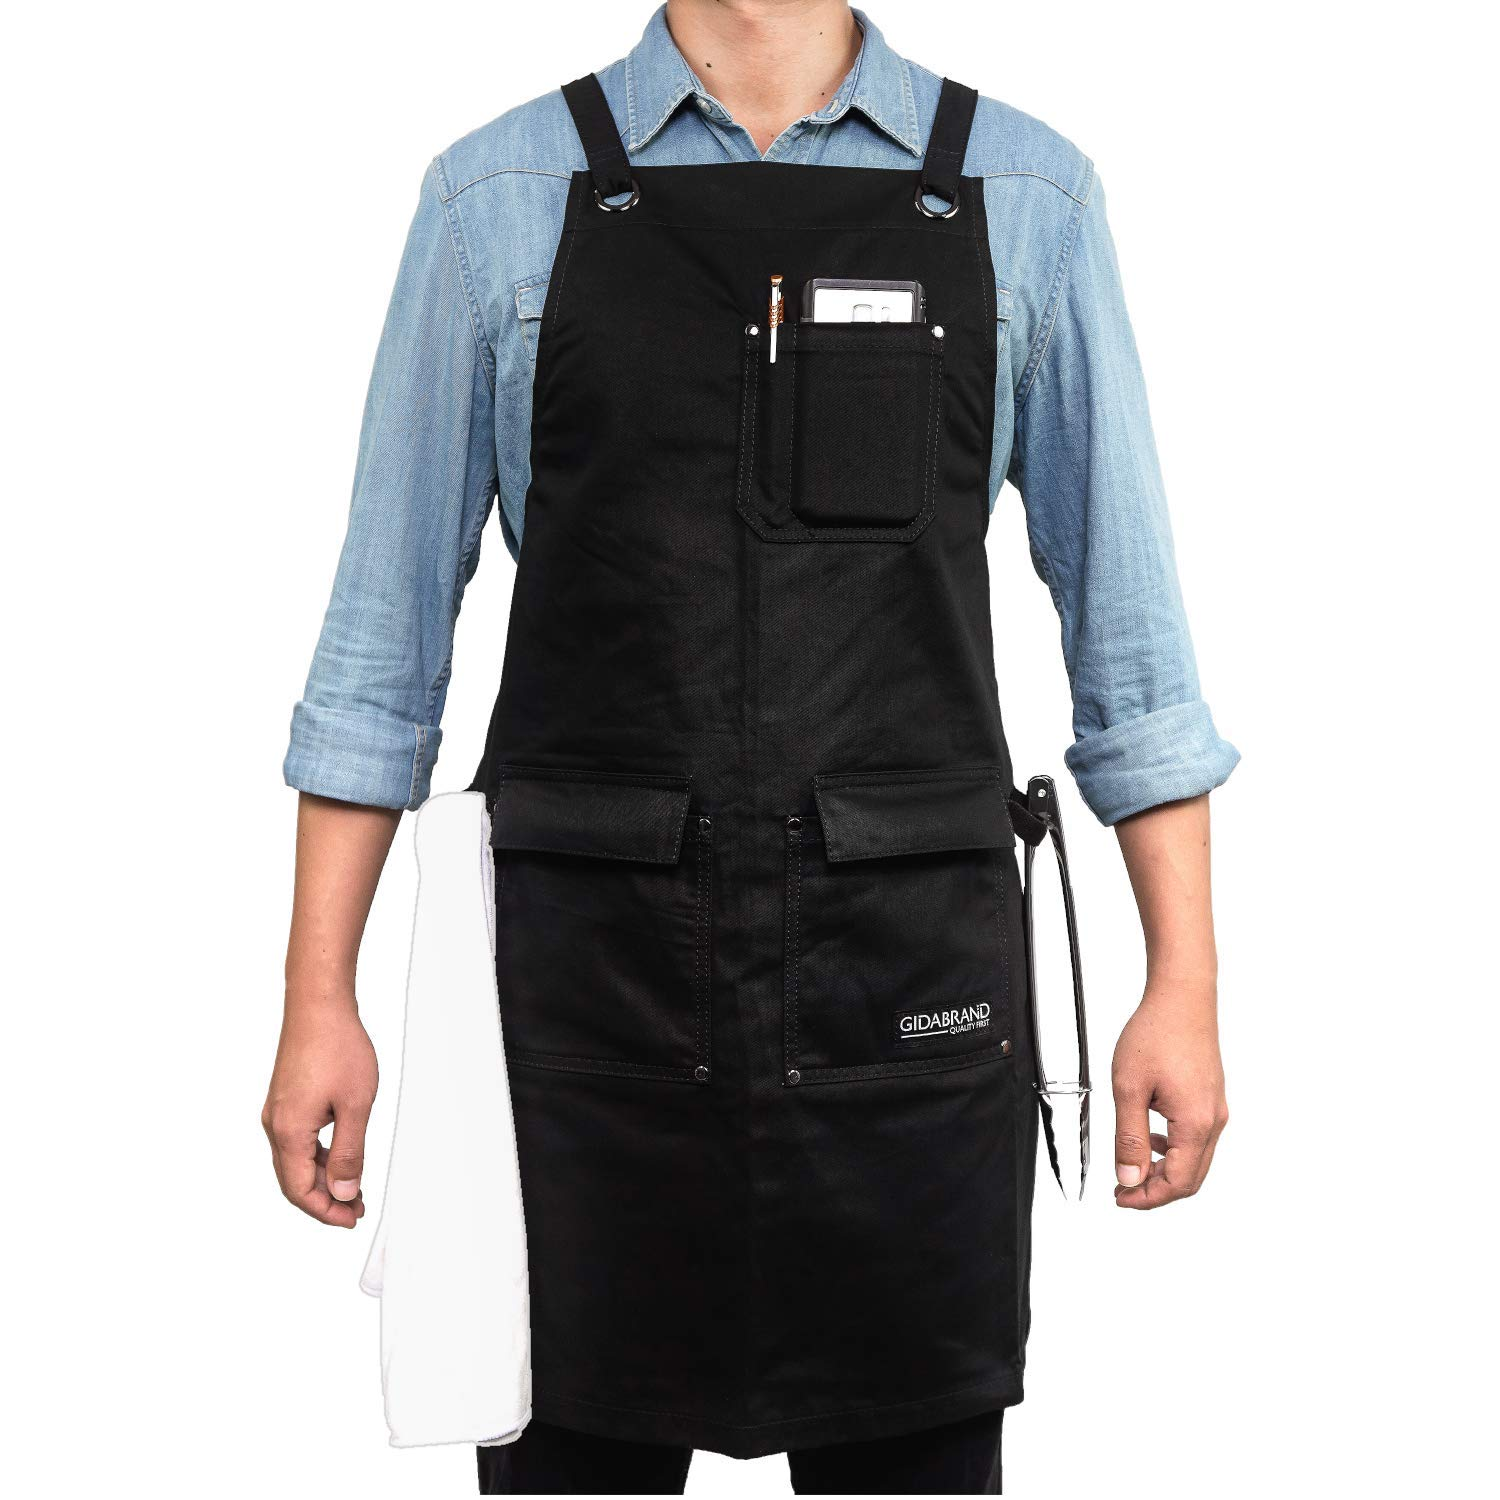 Professional Chef Kitchen Apron with Double Towel Loop – 10 oz Cotton for Cooking, BBQ and Grill – Men Women Design with 3 Pockets, Quick Release Buckle and Adjustable Strap M to XXL (Black)